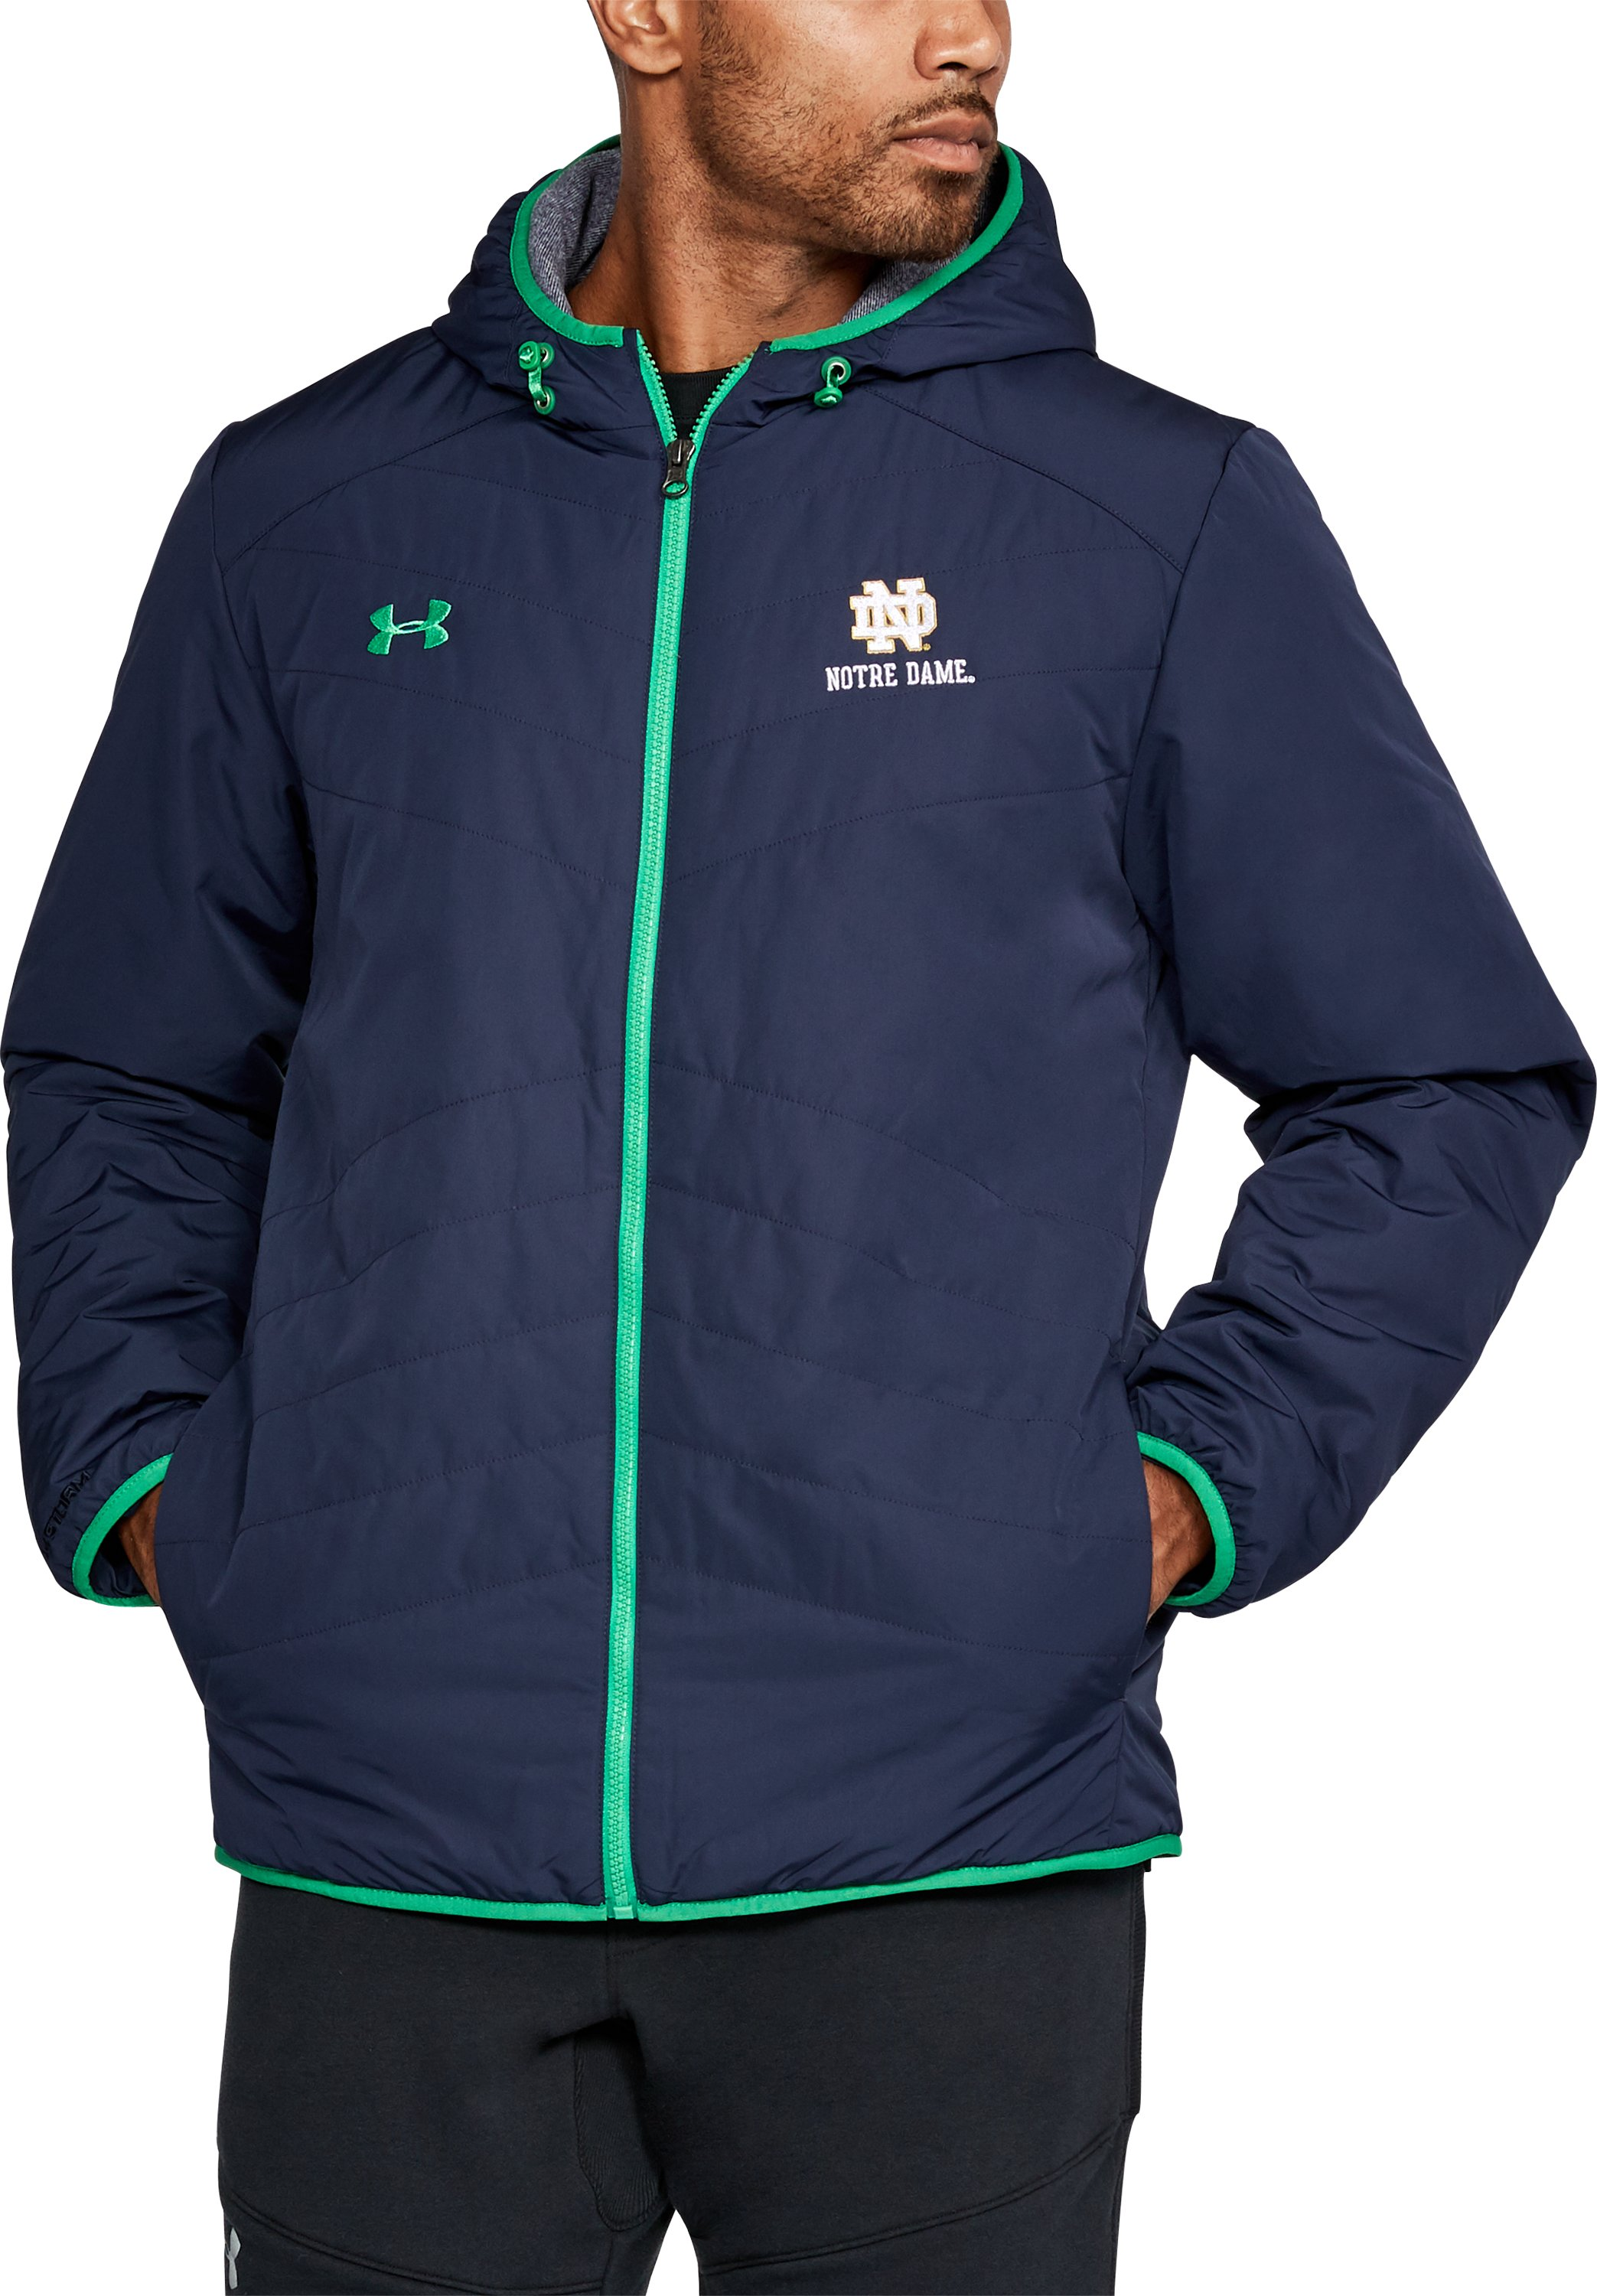 Men's Notre Dame Jacket, Midnight Navy, undefined